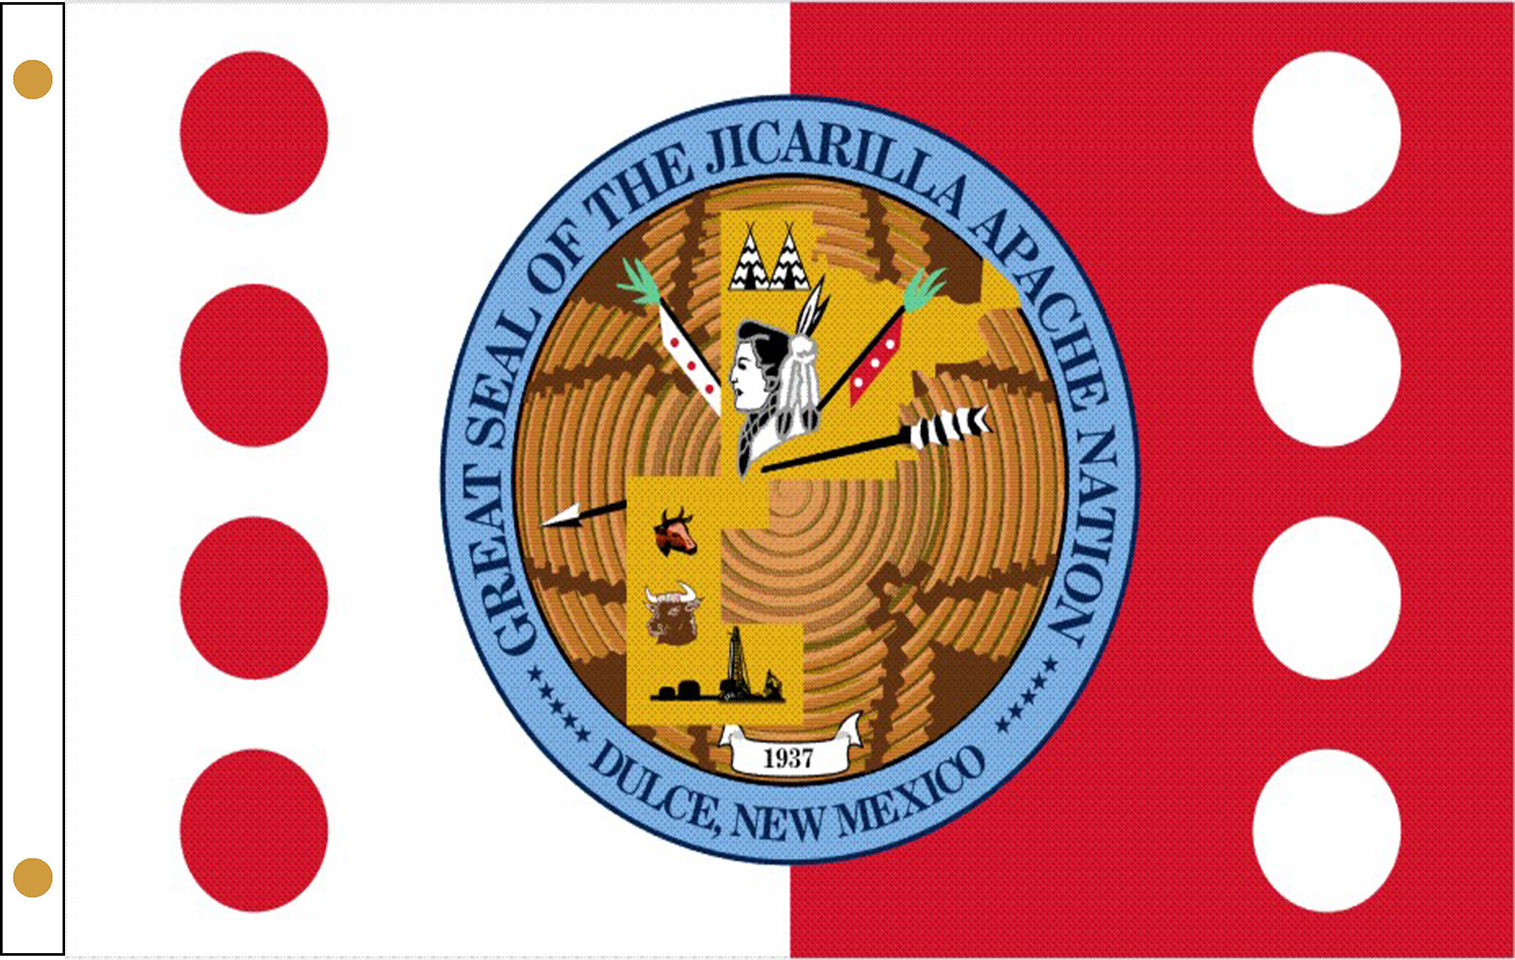 Jicarilla Apache Tribe Flags